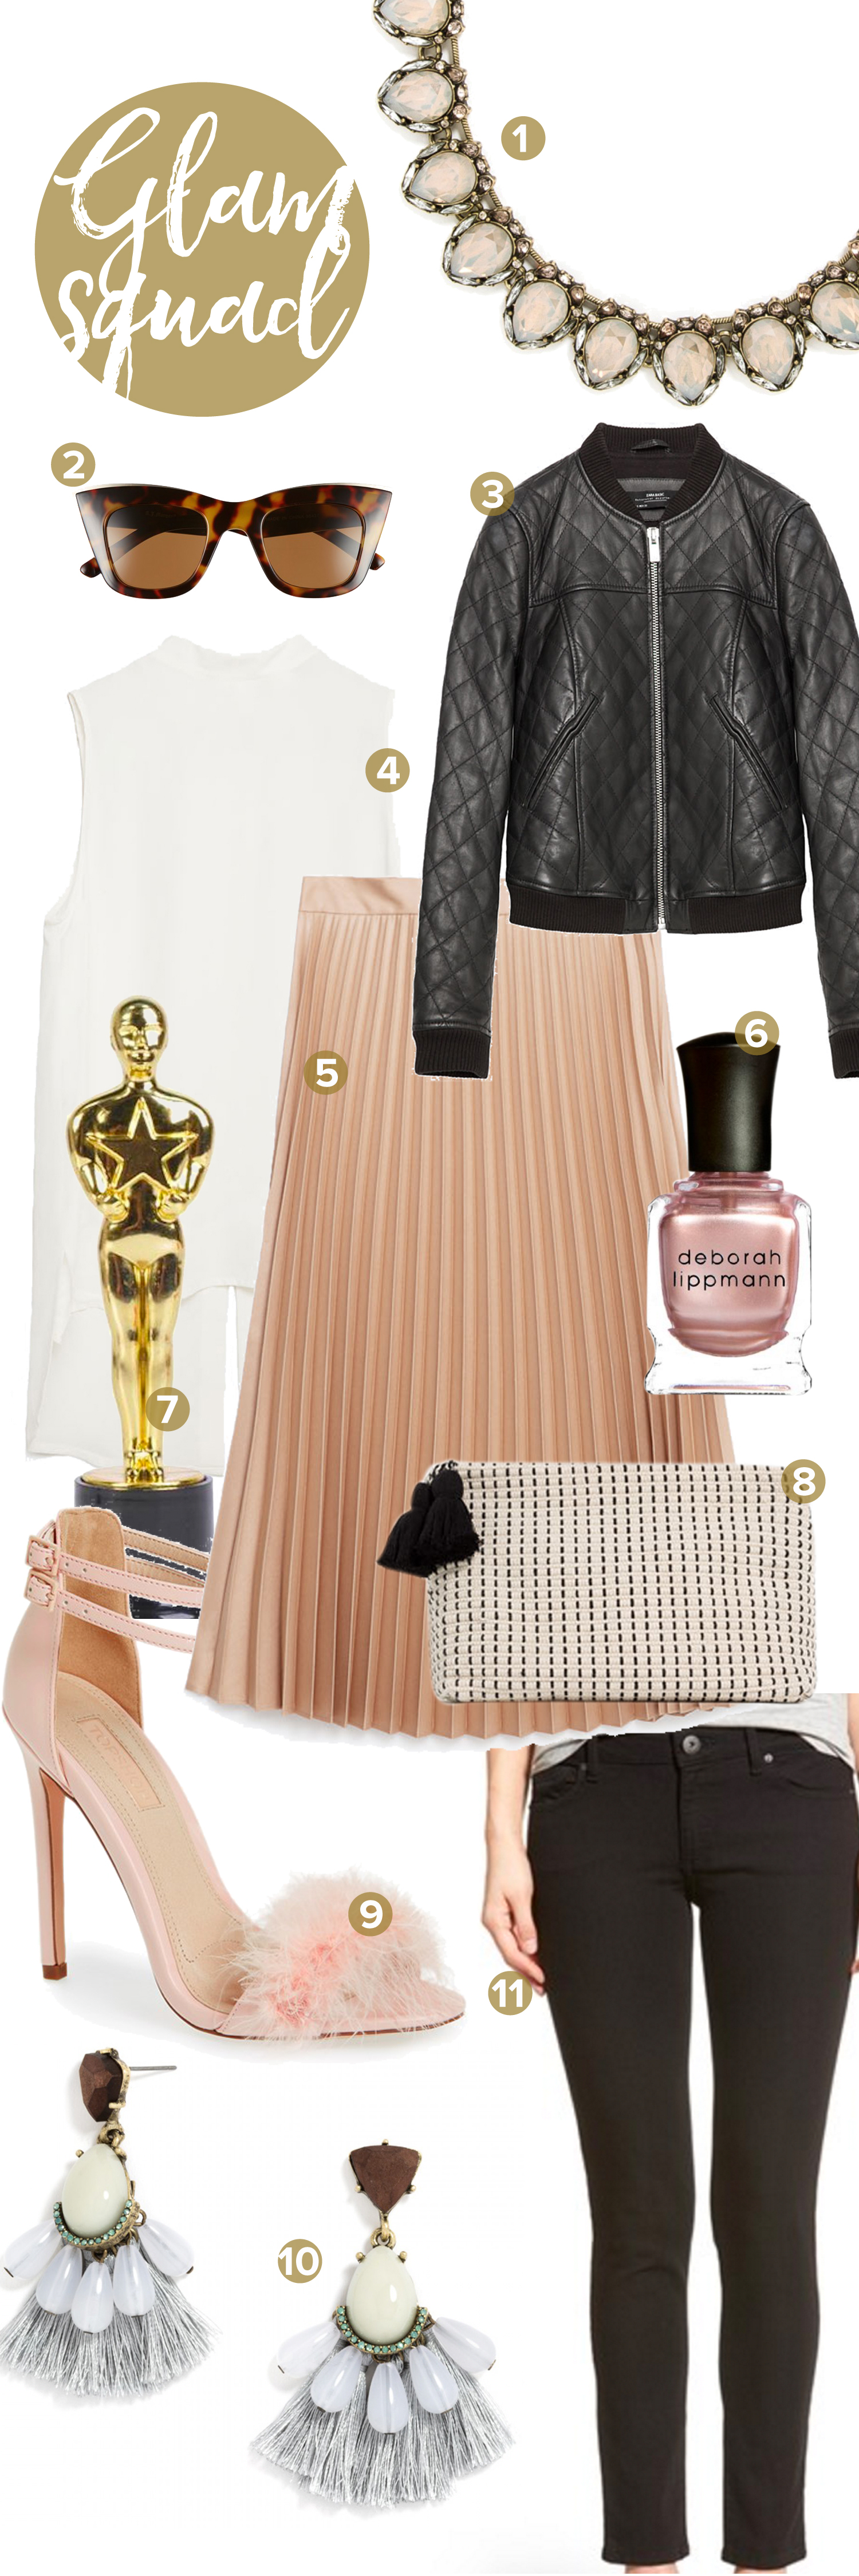 1 -  Bauble Bar Firestone Collar  , 2 -  A.J. Morgan Sunglasses , 3 -  Zara Jacket , 4 -  Zara Top , 5 -  Zara Skirt , 6 -  Deborah Lippmann Nail Polish In Glamorous Life   {affiliate link}, 7 -  Oscar Like Trophy   {affiliate link} , 8 -  Zara Clutch , 9 -  Top Shop Reese Heels , 10 -  Baublebar Ellis Drops , 11 -  DL 1961 Power Legging Jeans